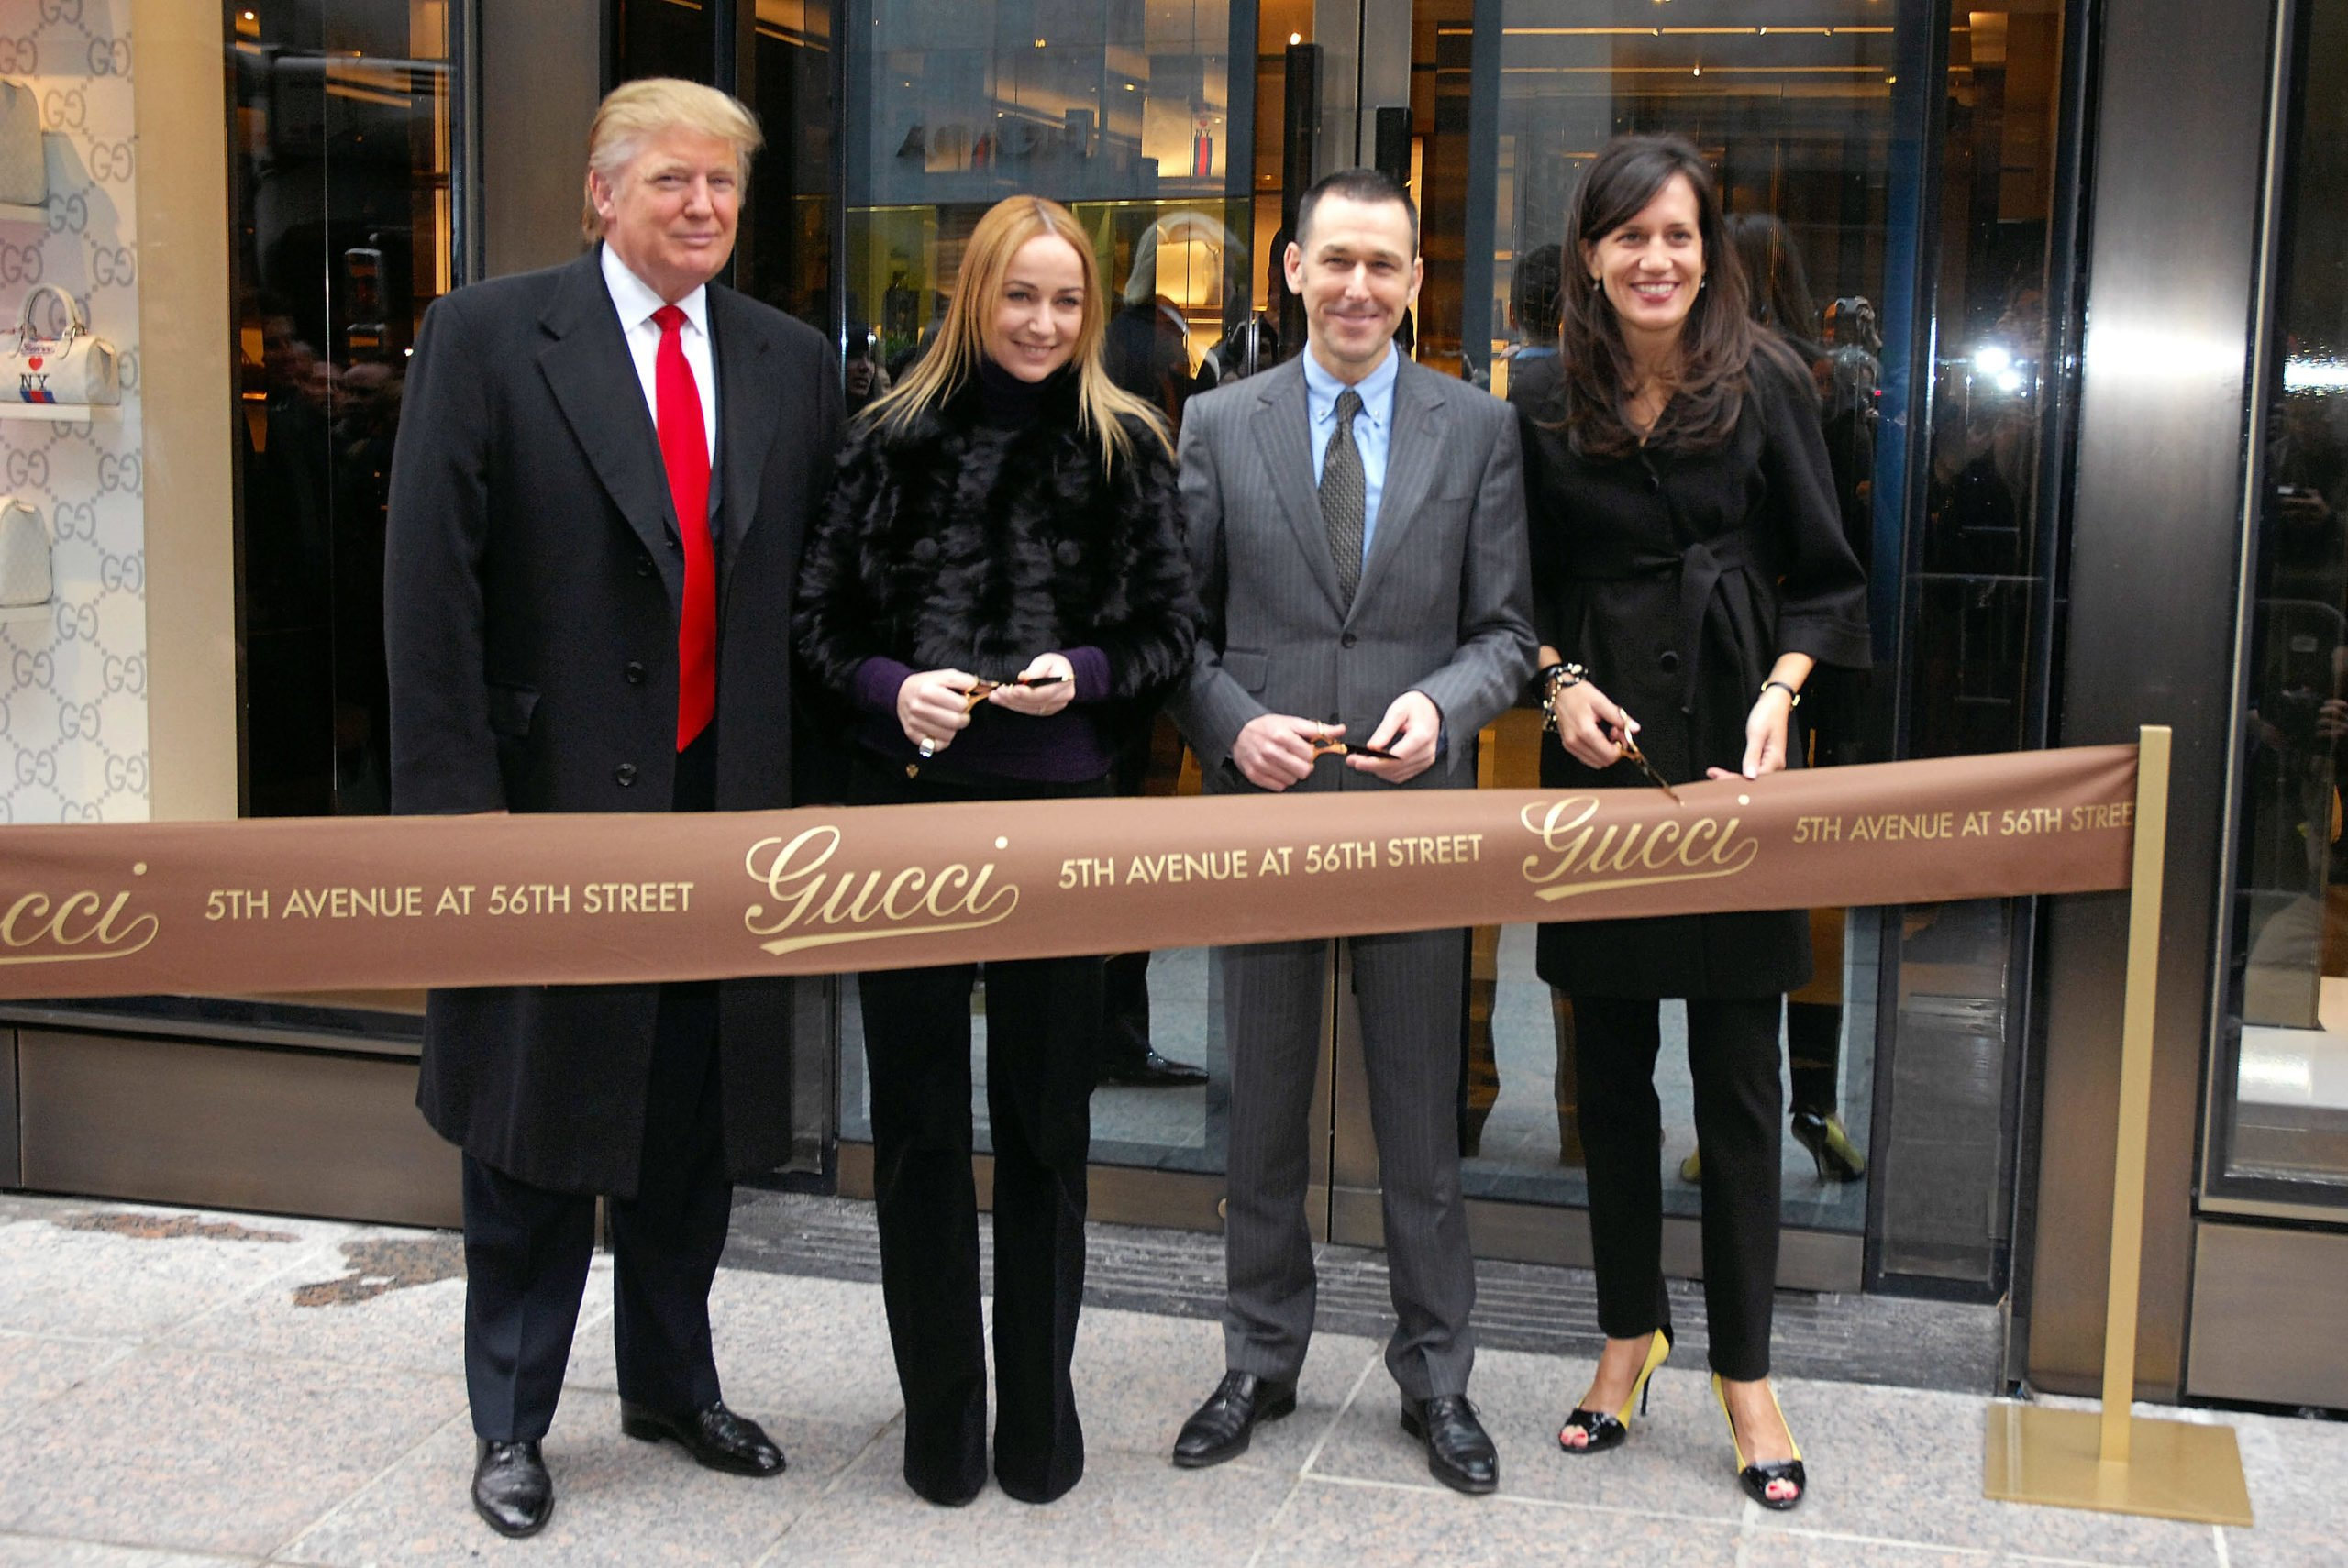 Donald Trump (L) joins Gucci Creative Director Frida Giannini, Gucci CEO Mark Lee and Gucci President Daniella Vitale for the new flagship store ribbon cutting at Trump Tower on February 8, 2008 in New York City. (Photo by Rob Loud/Getty Images)